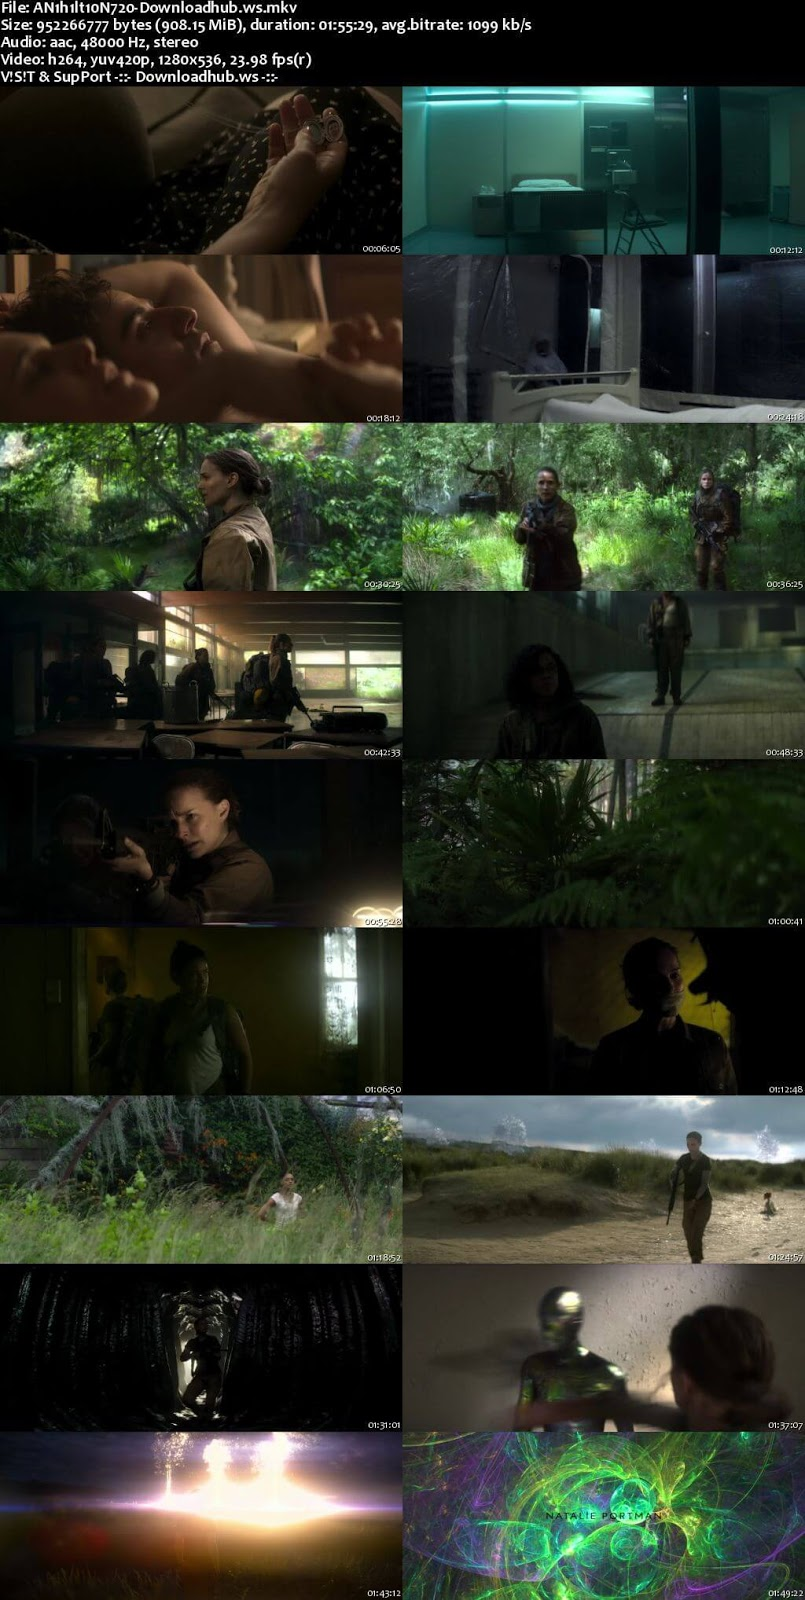 Annihilation 2018 English 720p WEBRip 900MB MSubs